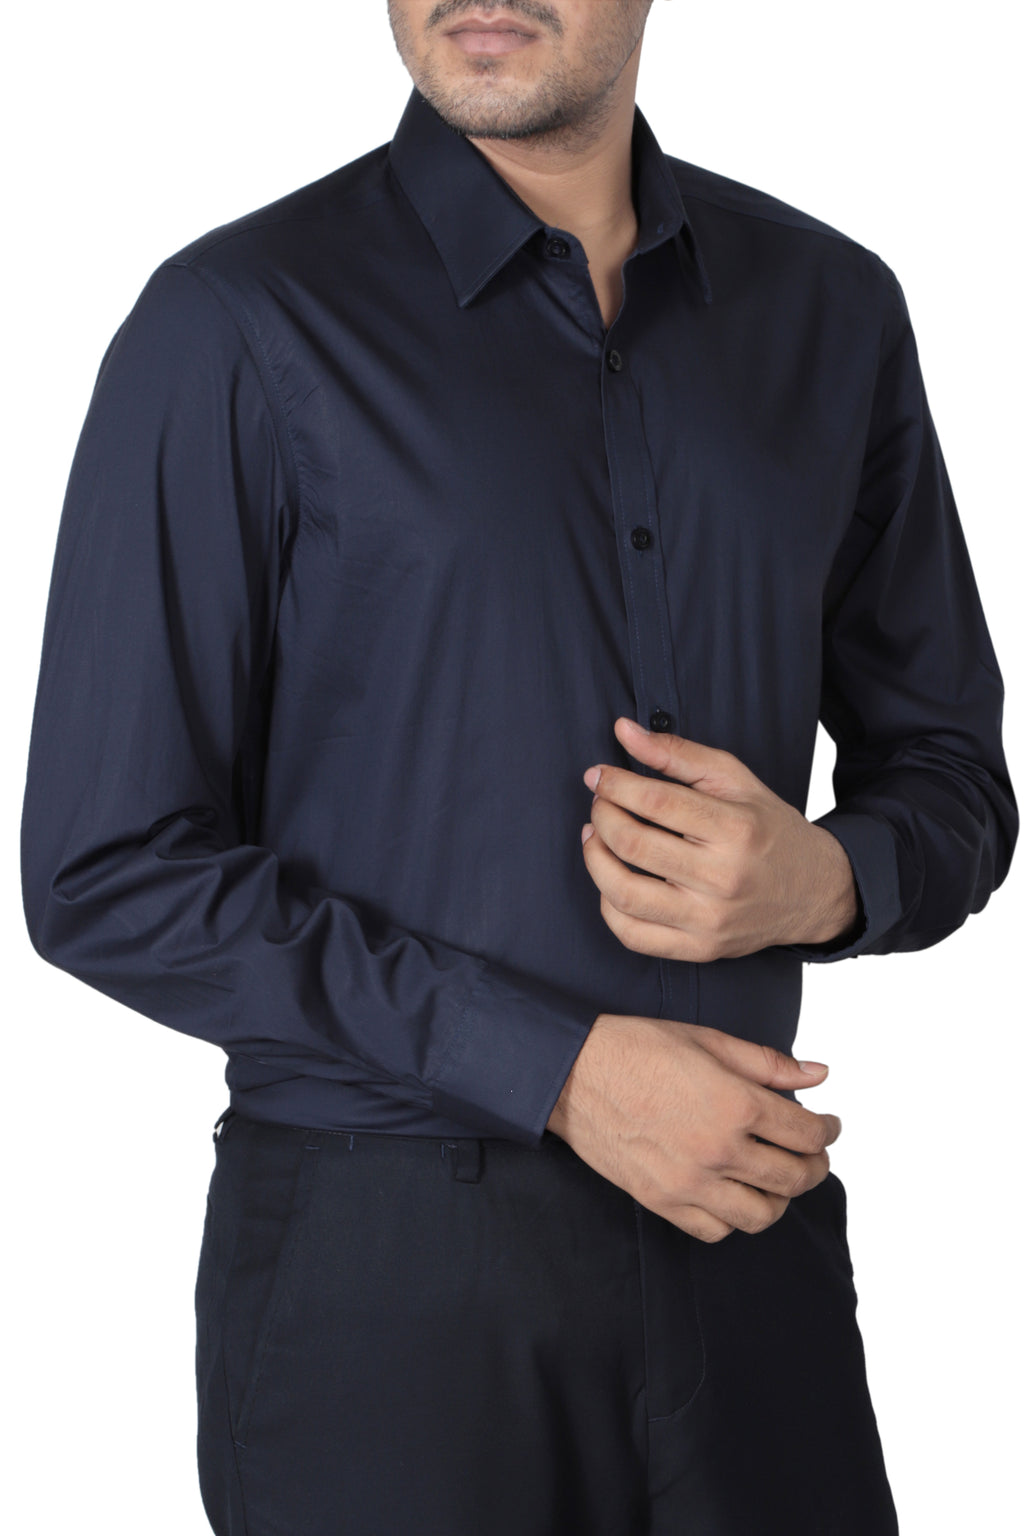 DEEP NAVY - SLIM FIT